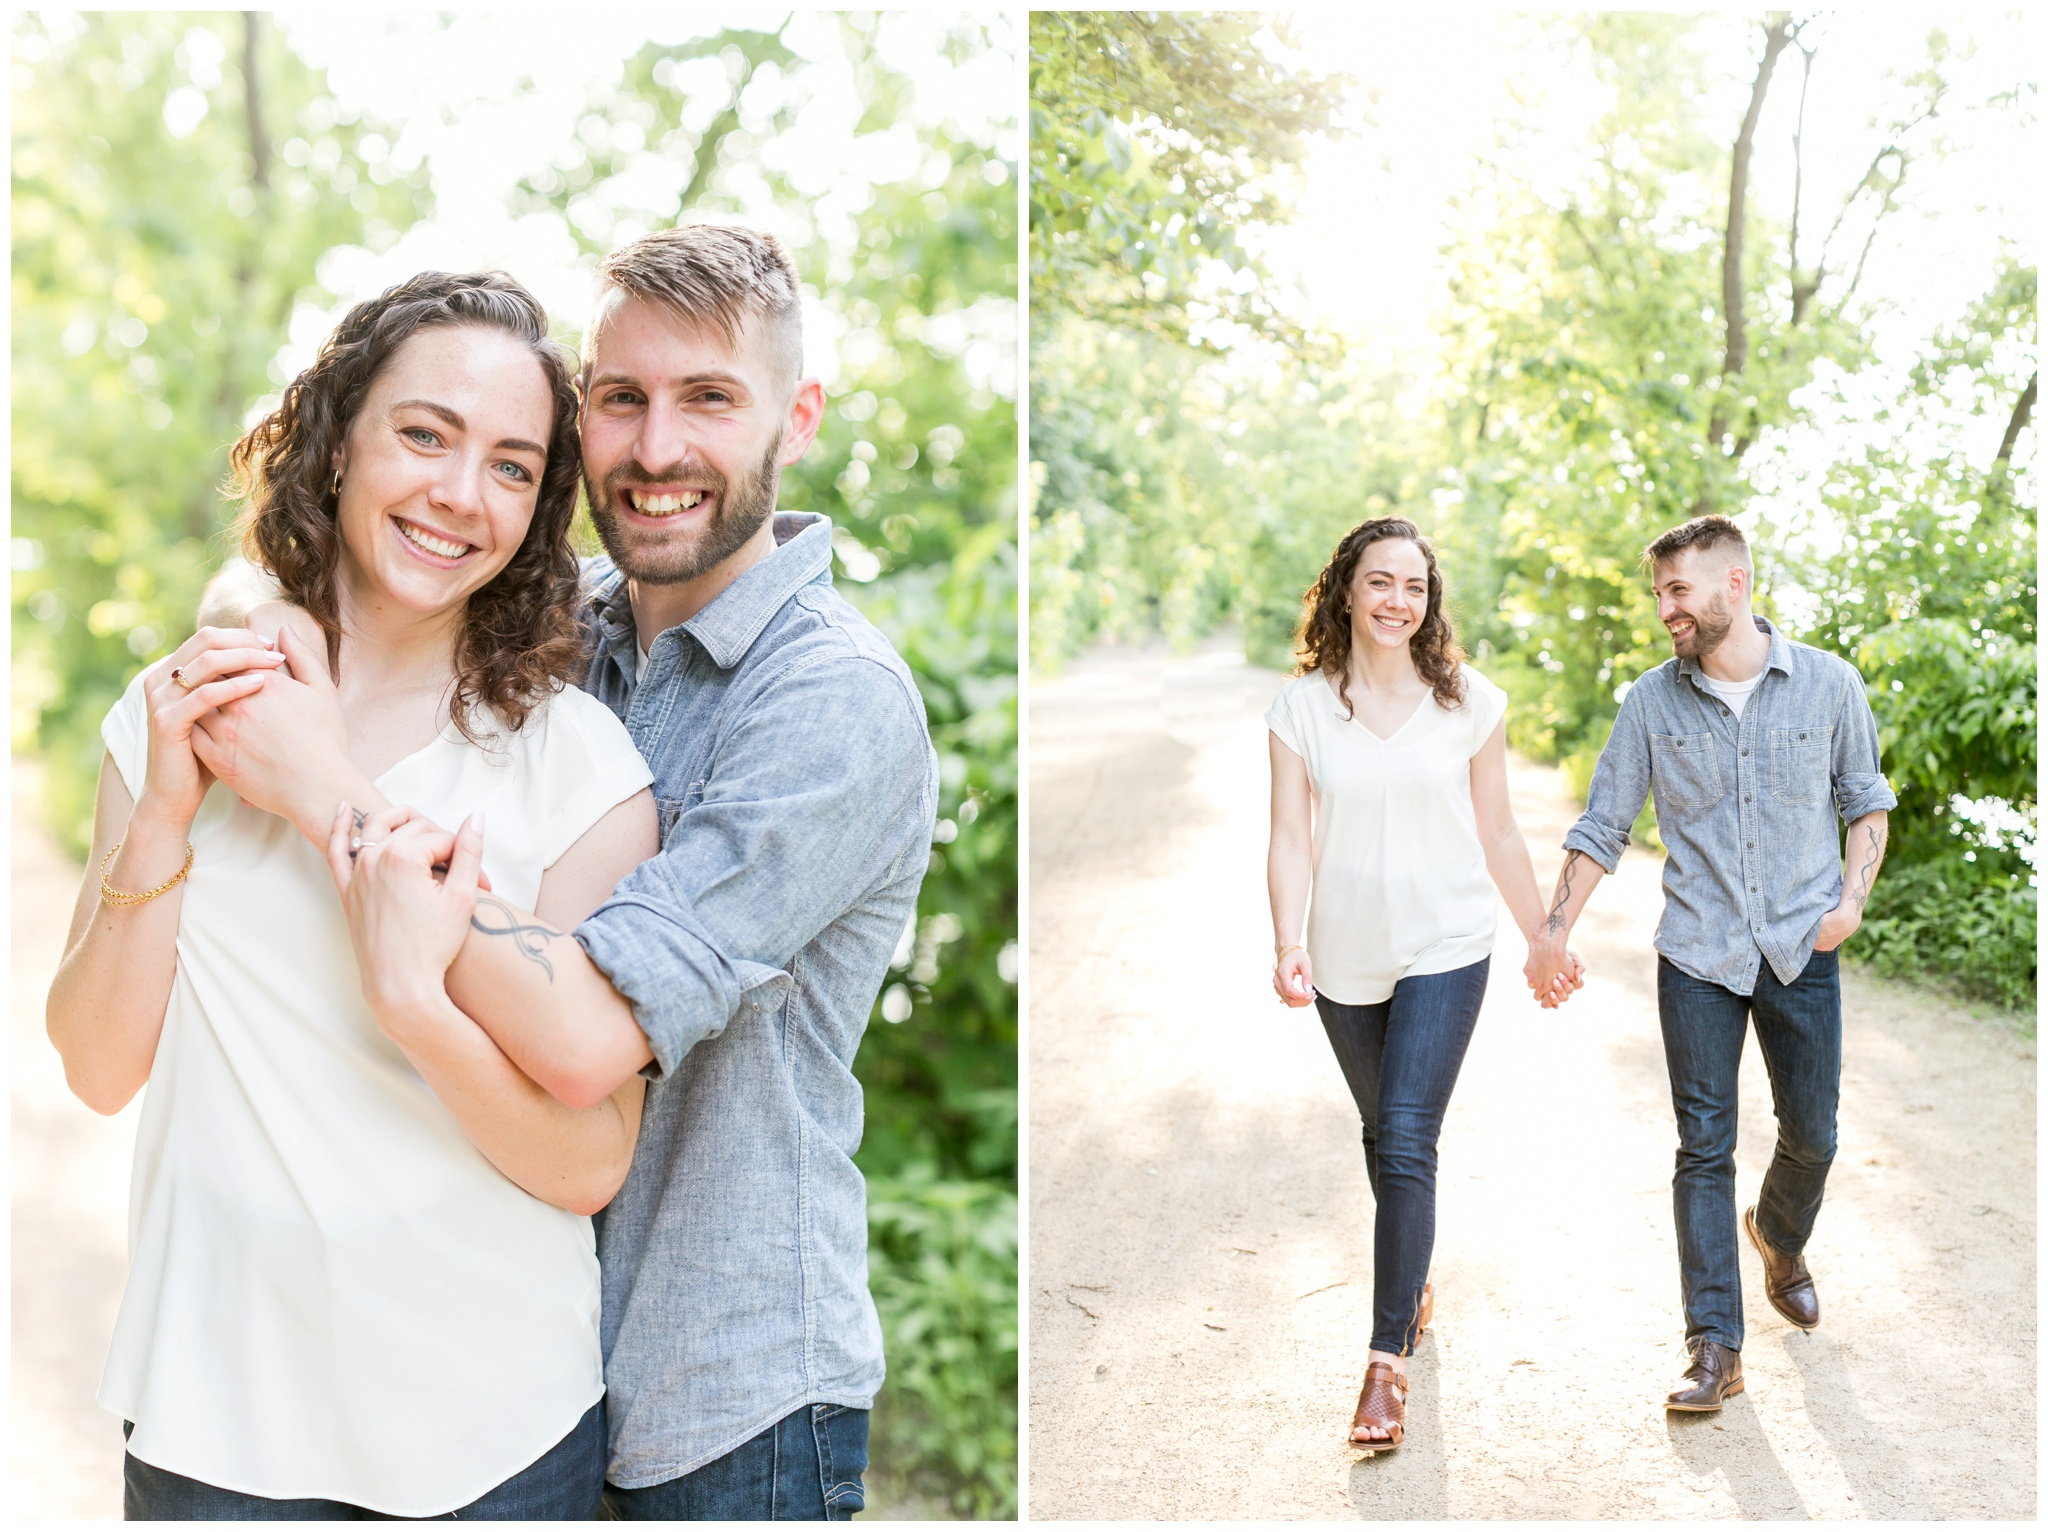 memorial_union_engagement_session_madison_wisconsin_photographers_3804.jpg